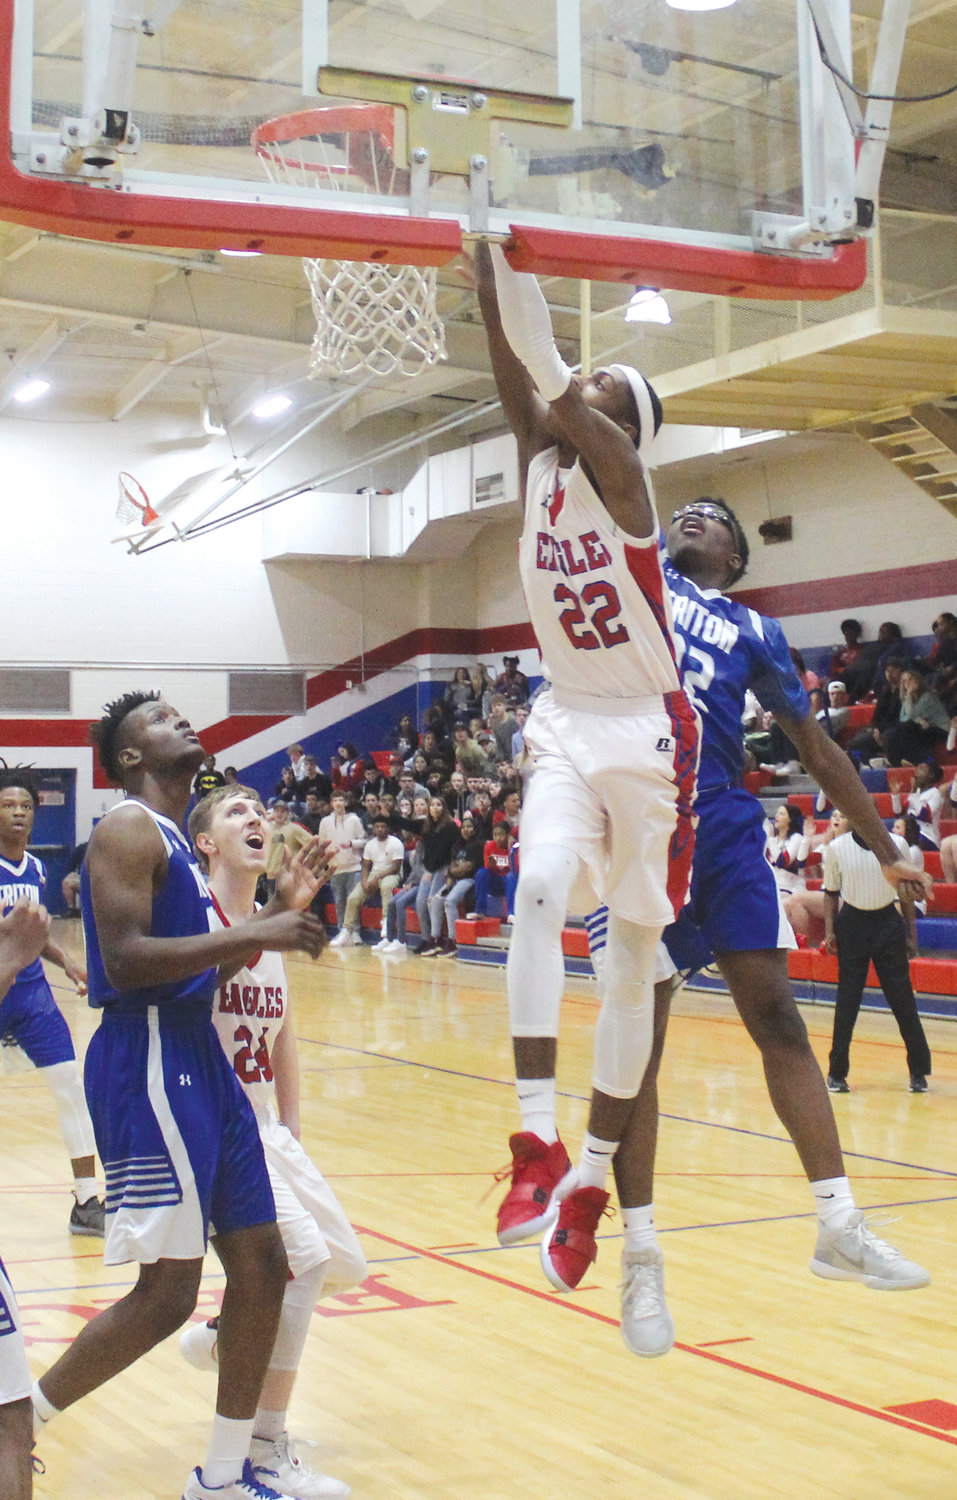 Western Harnett senior Tobias Dillard flushes home an and-one dunk against Triton. Dillard had nine points and gave the Hawks trouble inside all night in the 64-61 overtime victory.